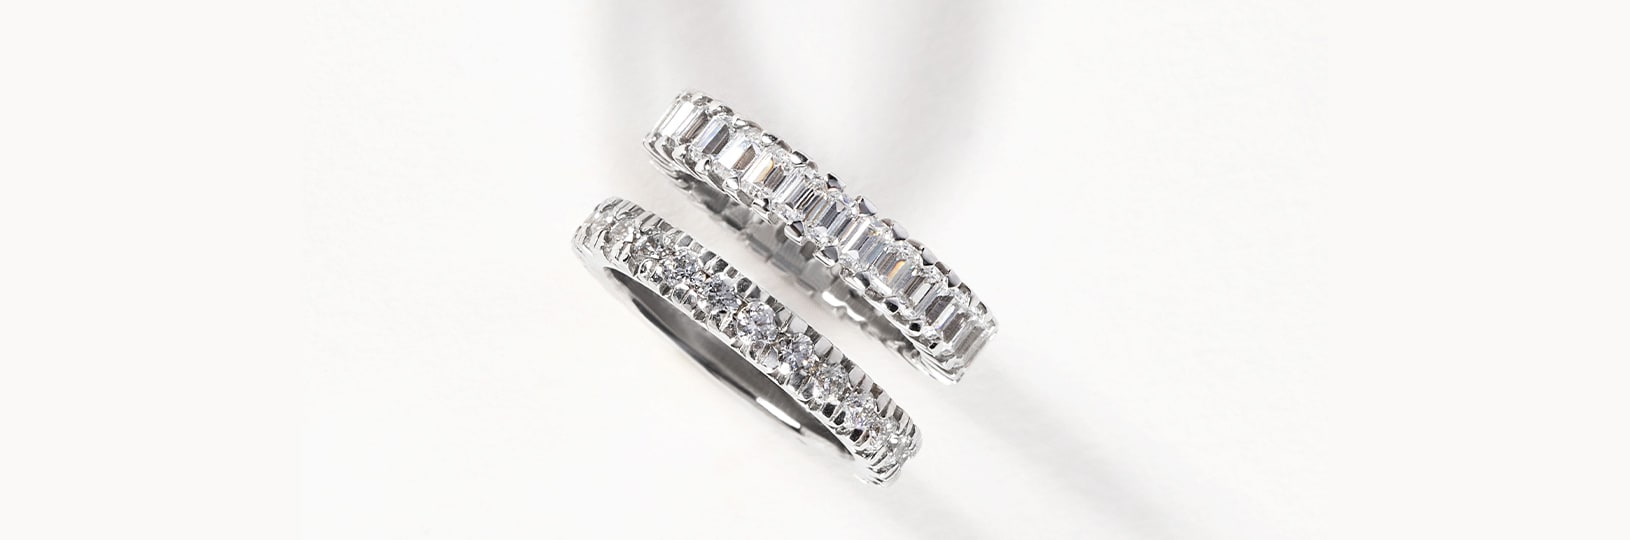 Two accented wedding bands featuring diamond simulants